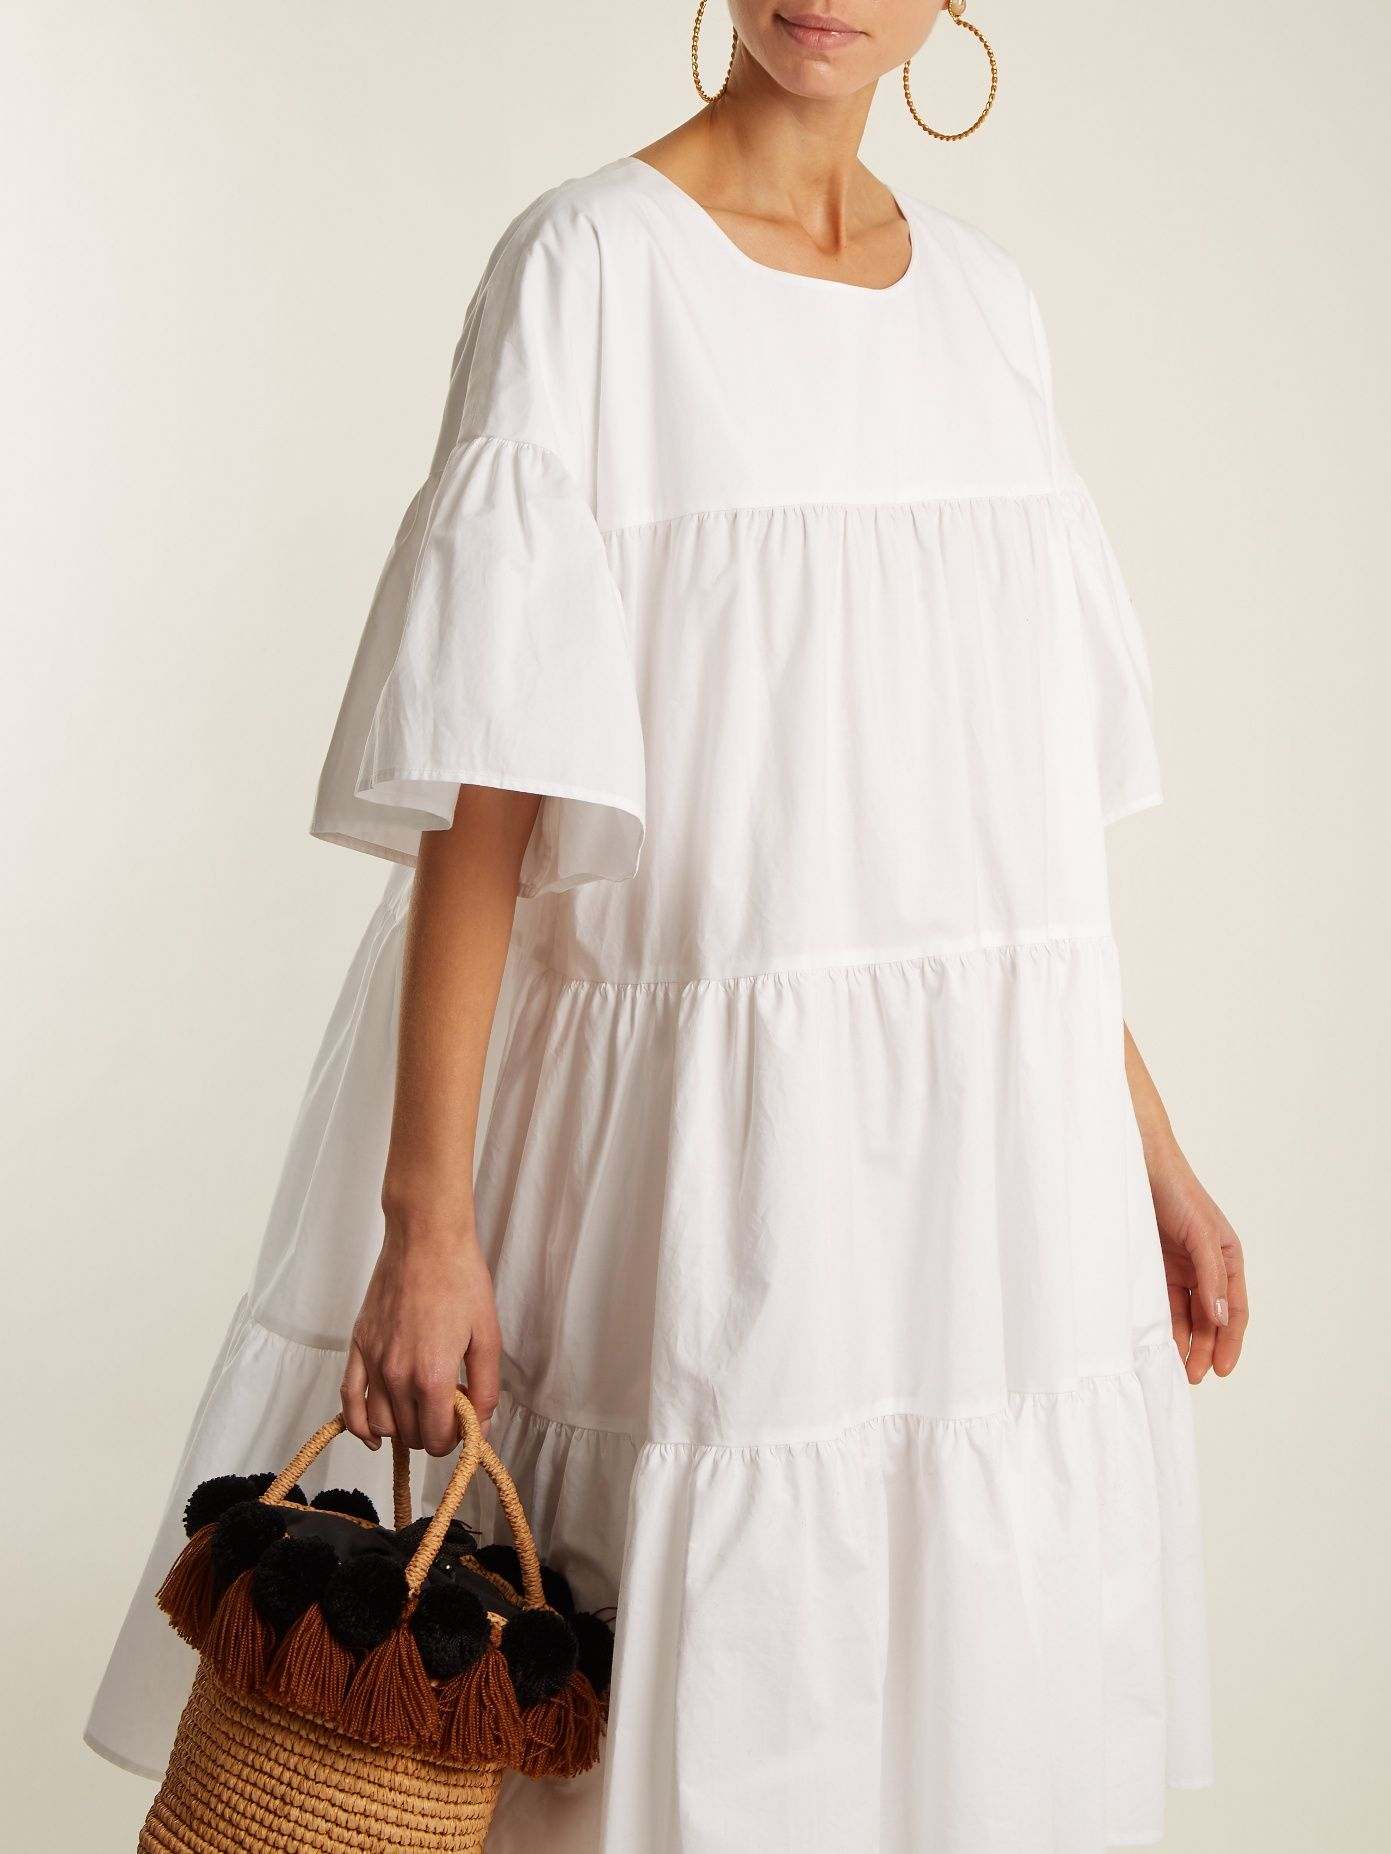 St Germain gathered cotton dress Merlette Cheap Real Eastbay Official Site Cheap Online Cheap Enjoy Clearance Visit ZQo2D